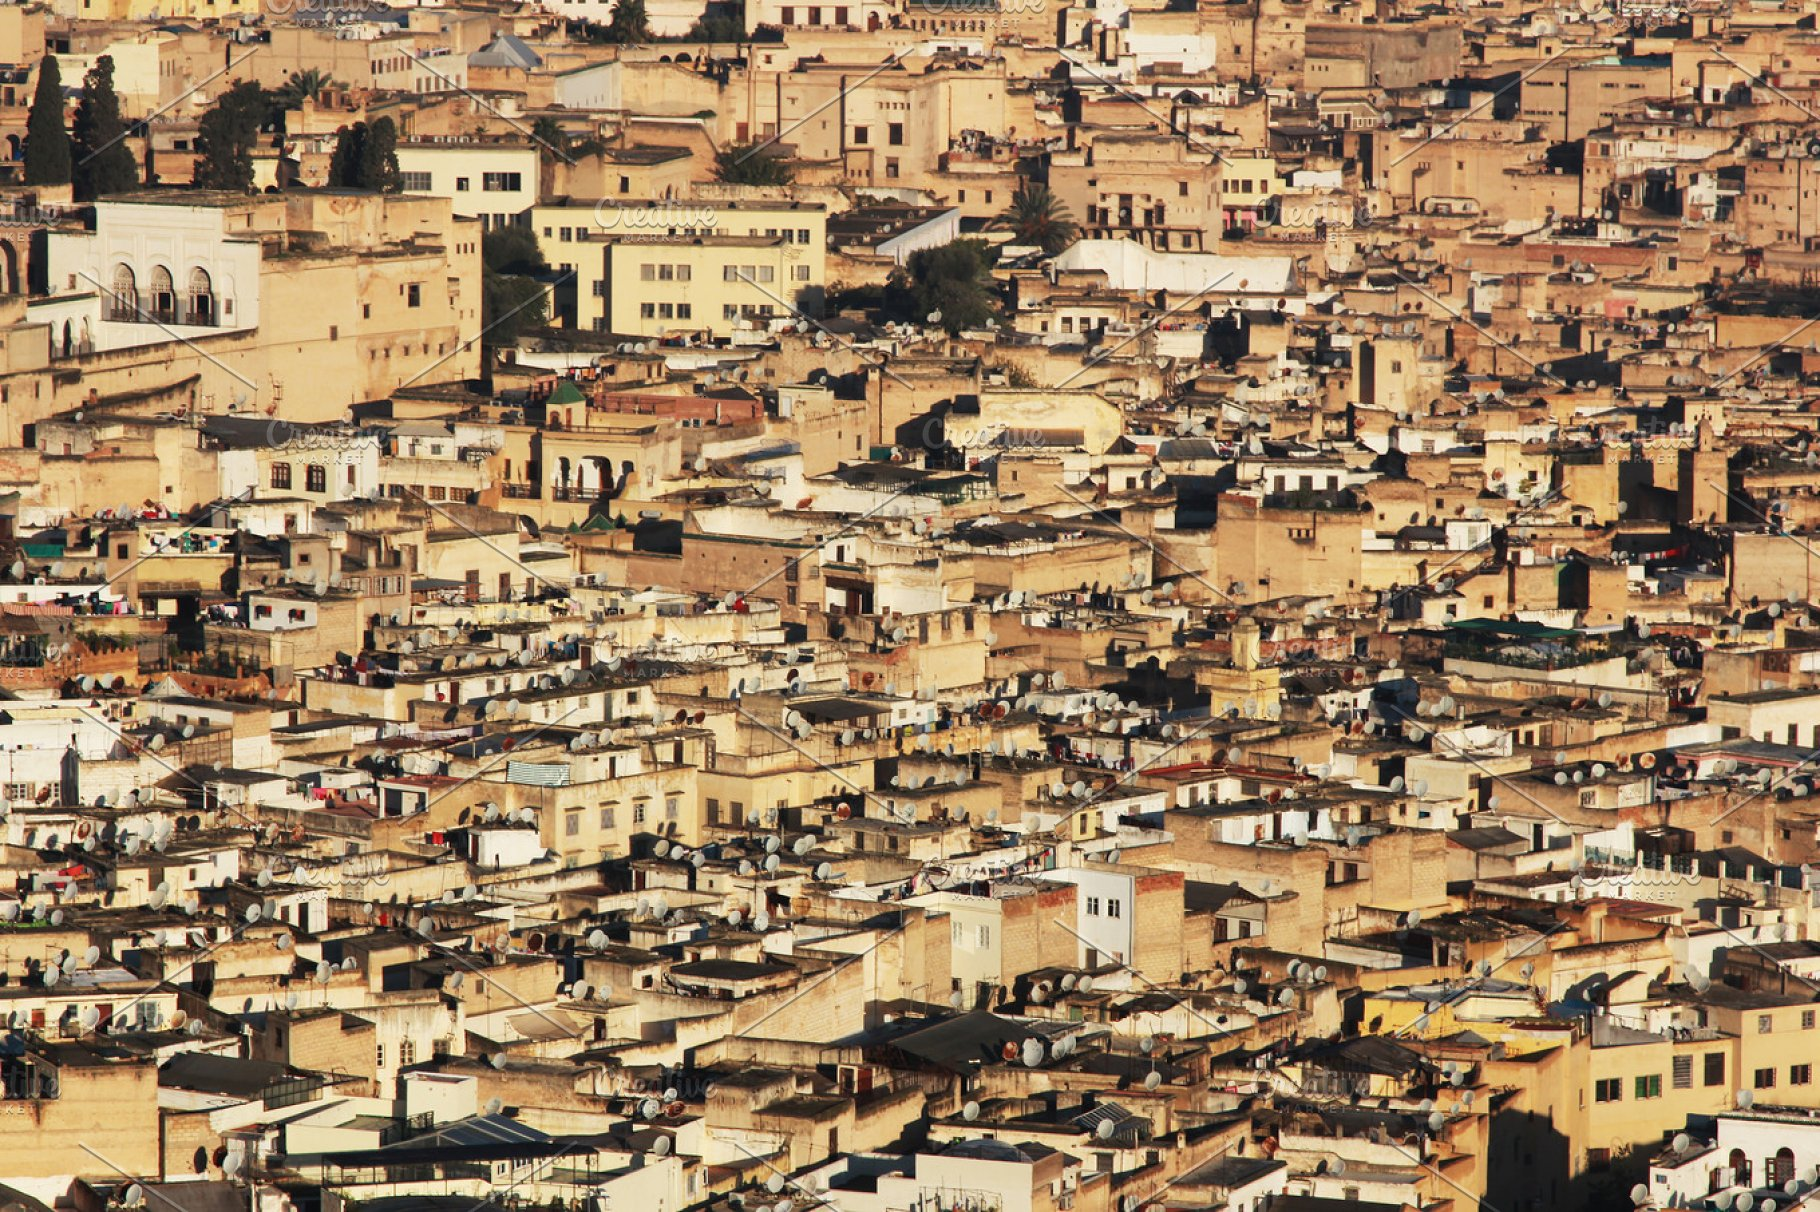 View of Fez Morocco